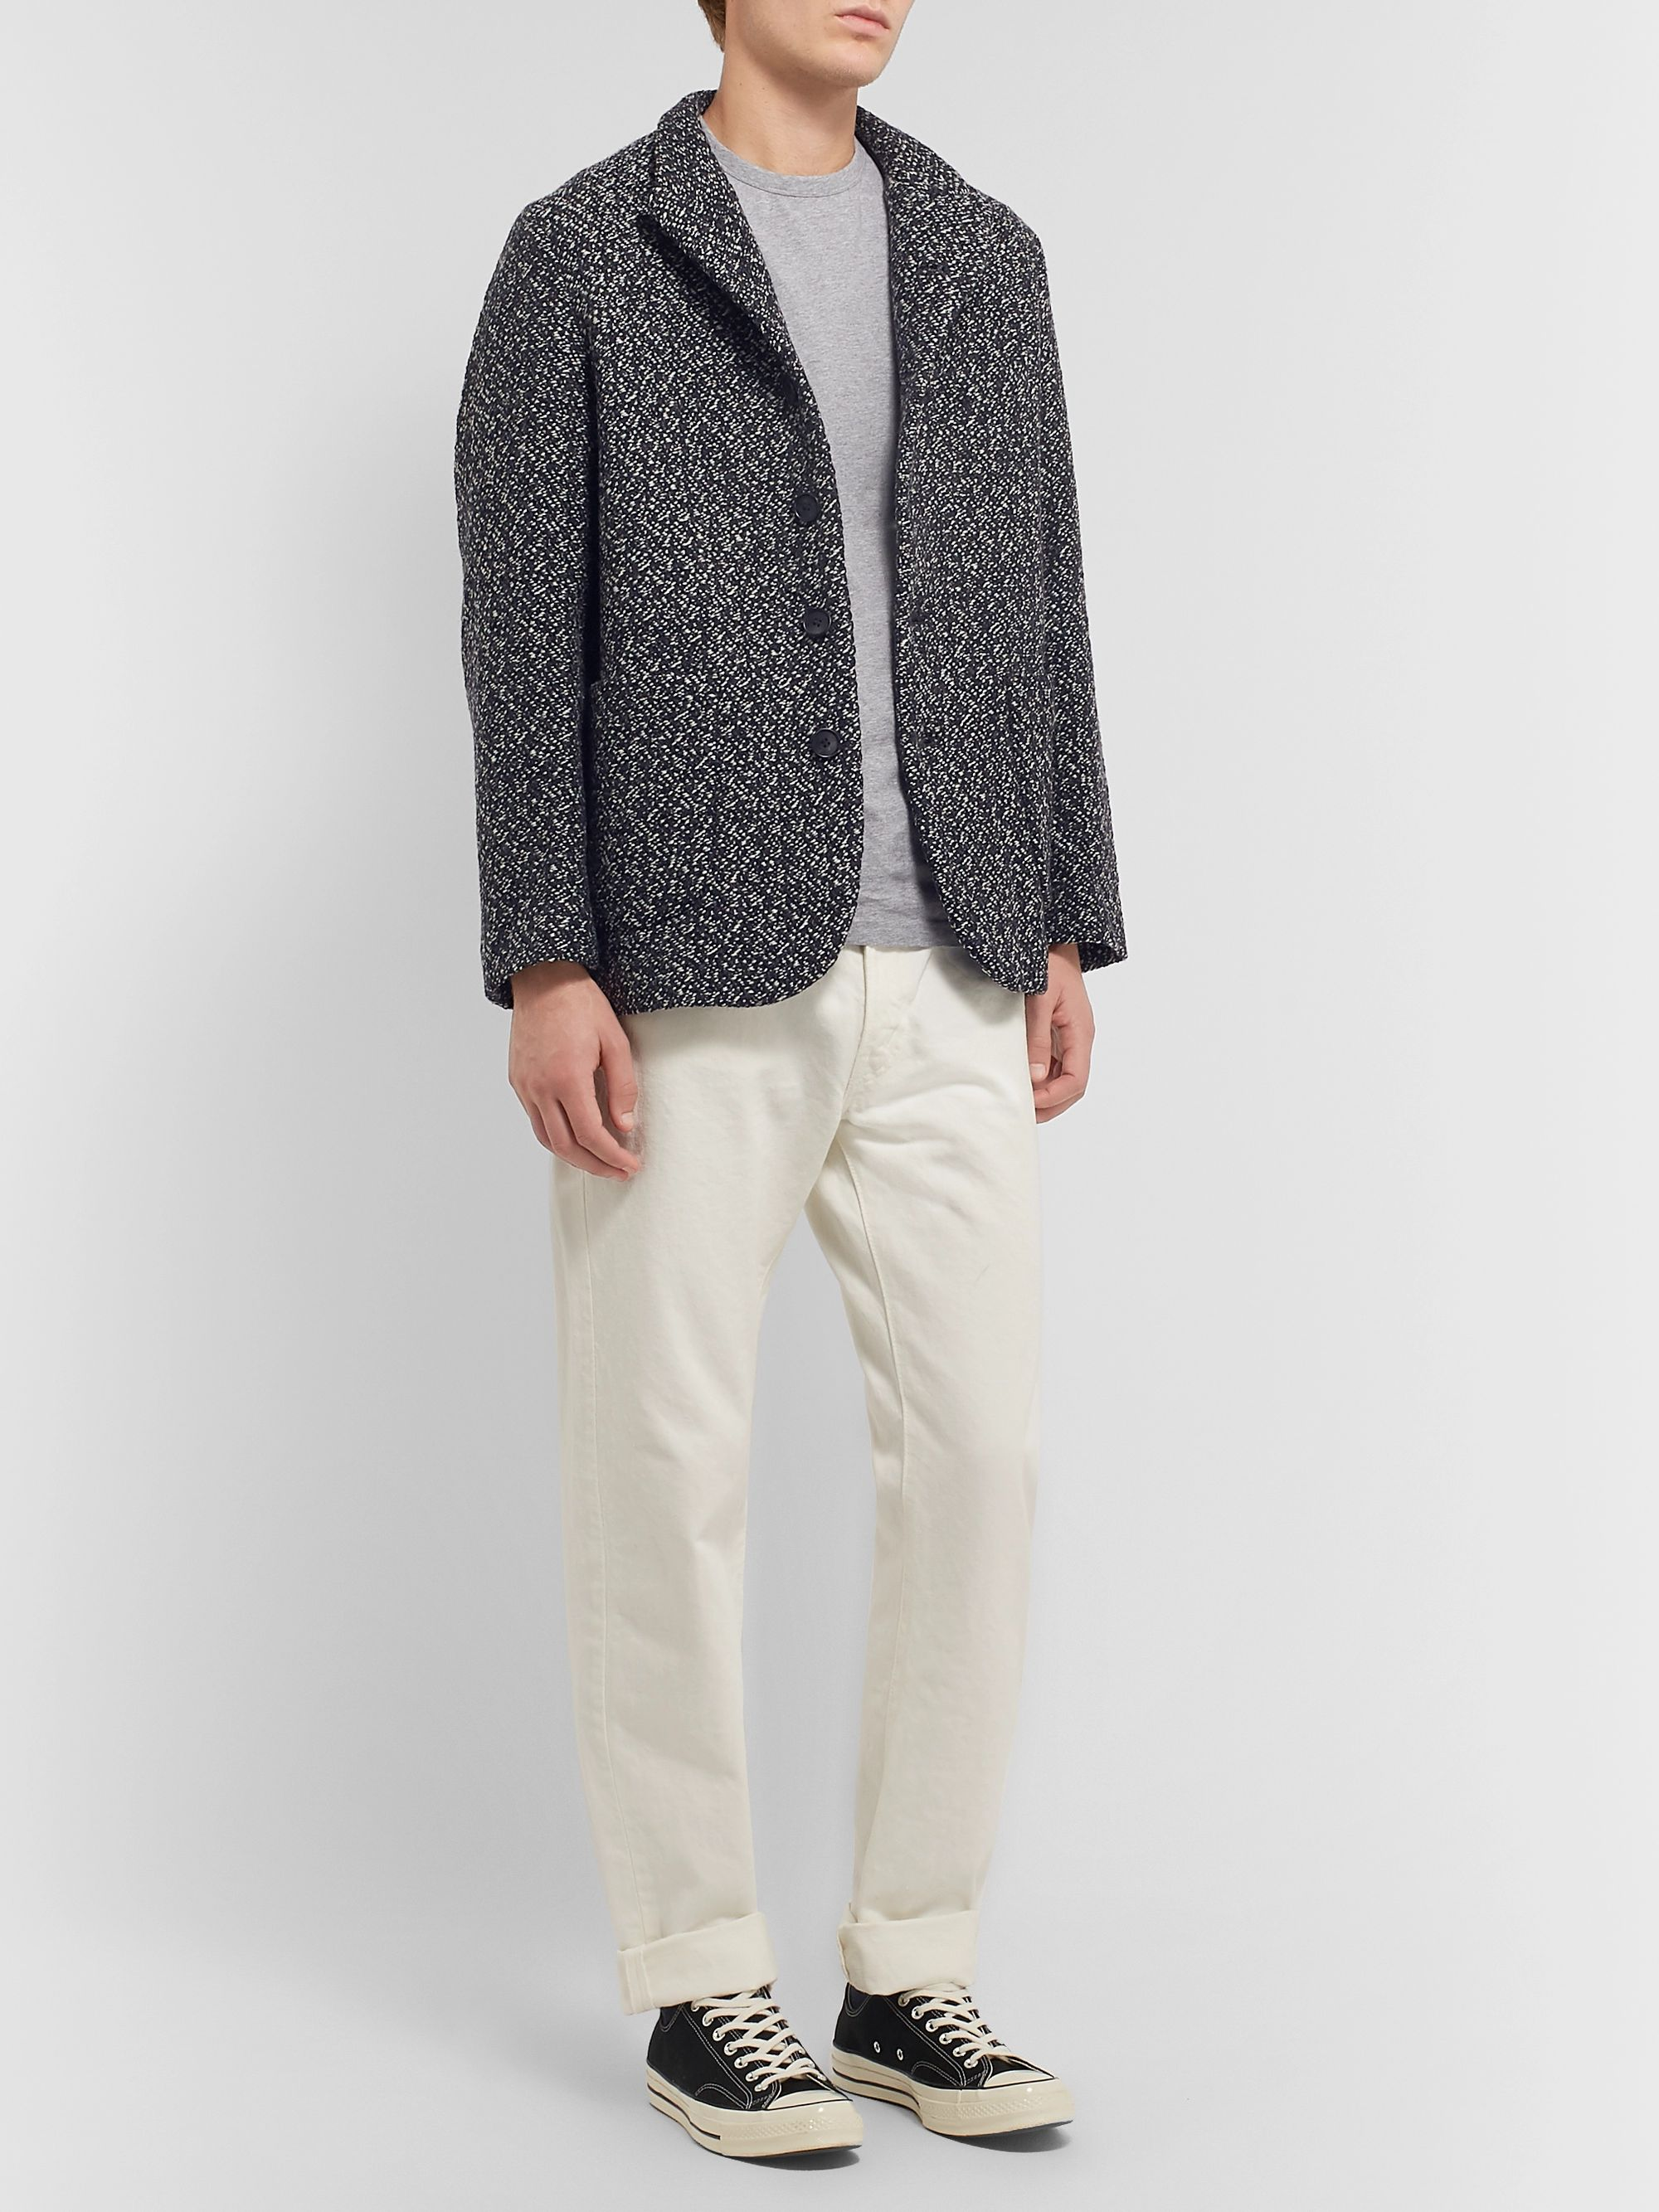 Blue Blue Japan Yuki Fubuki Wool-Tweed Blazer